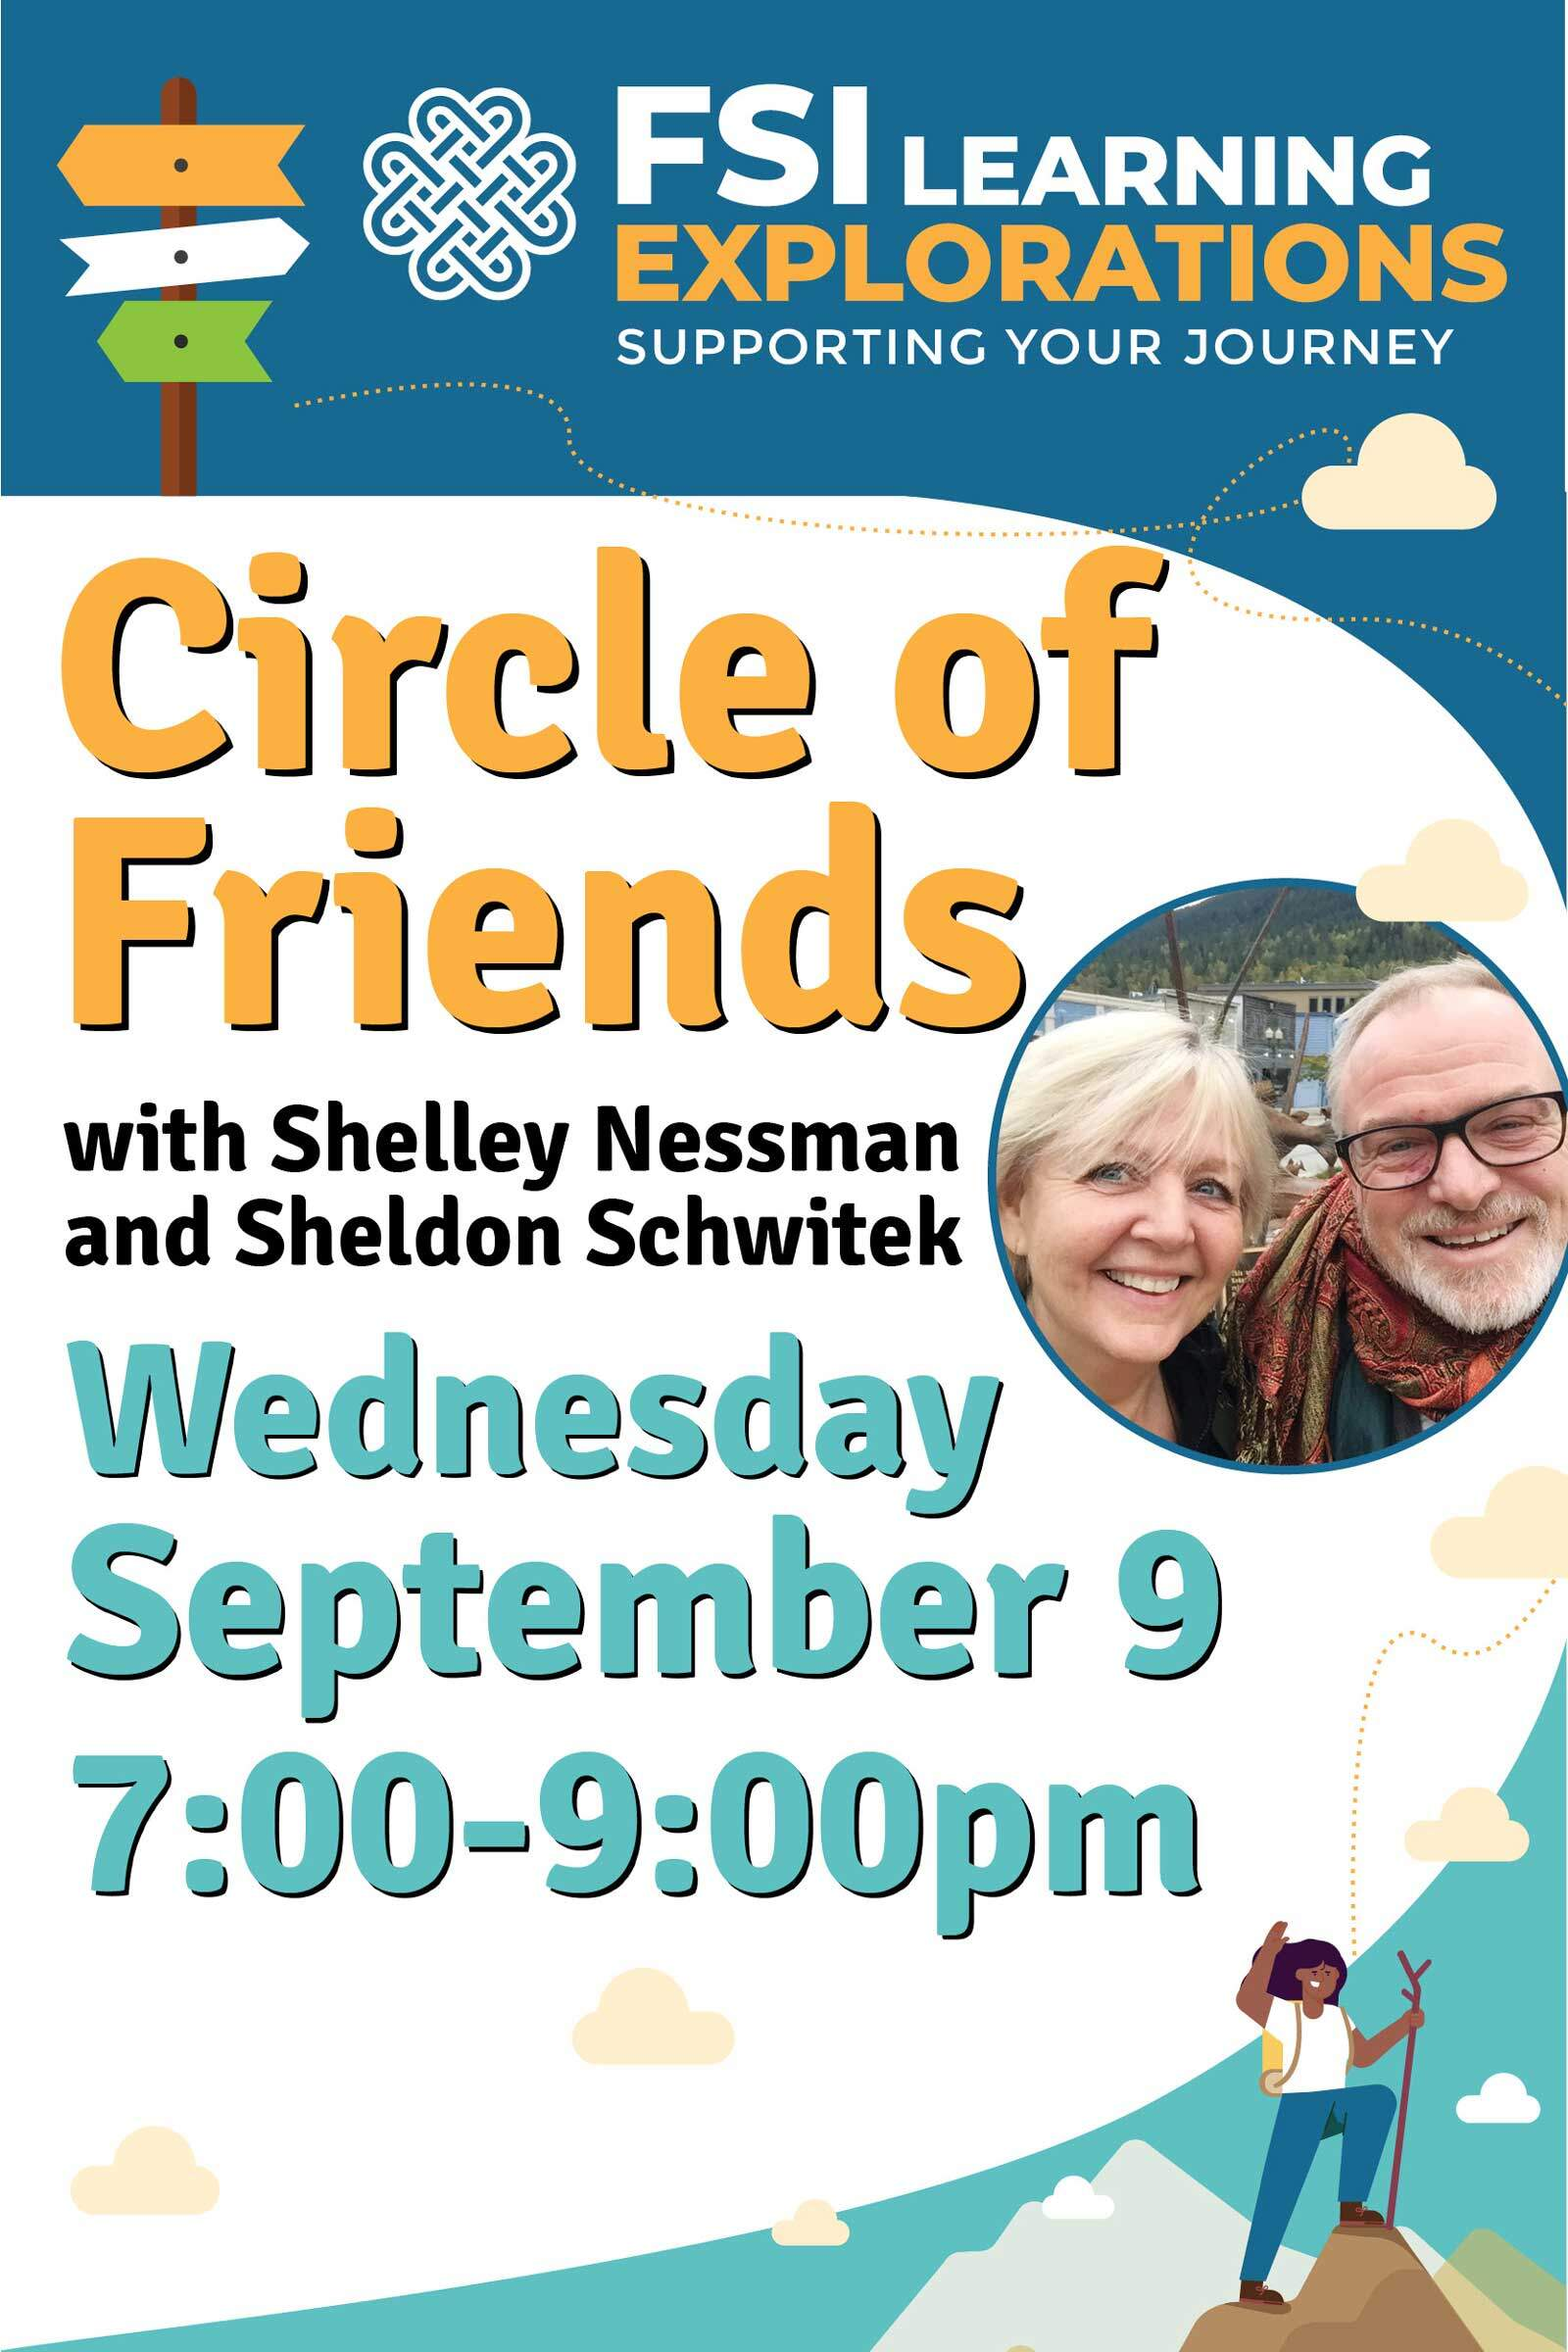 FSI Learning Explorations - Circle of Friends